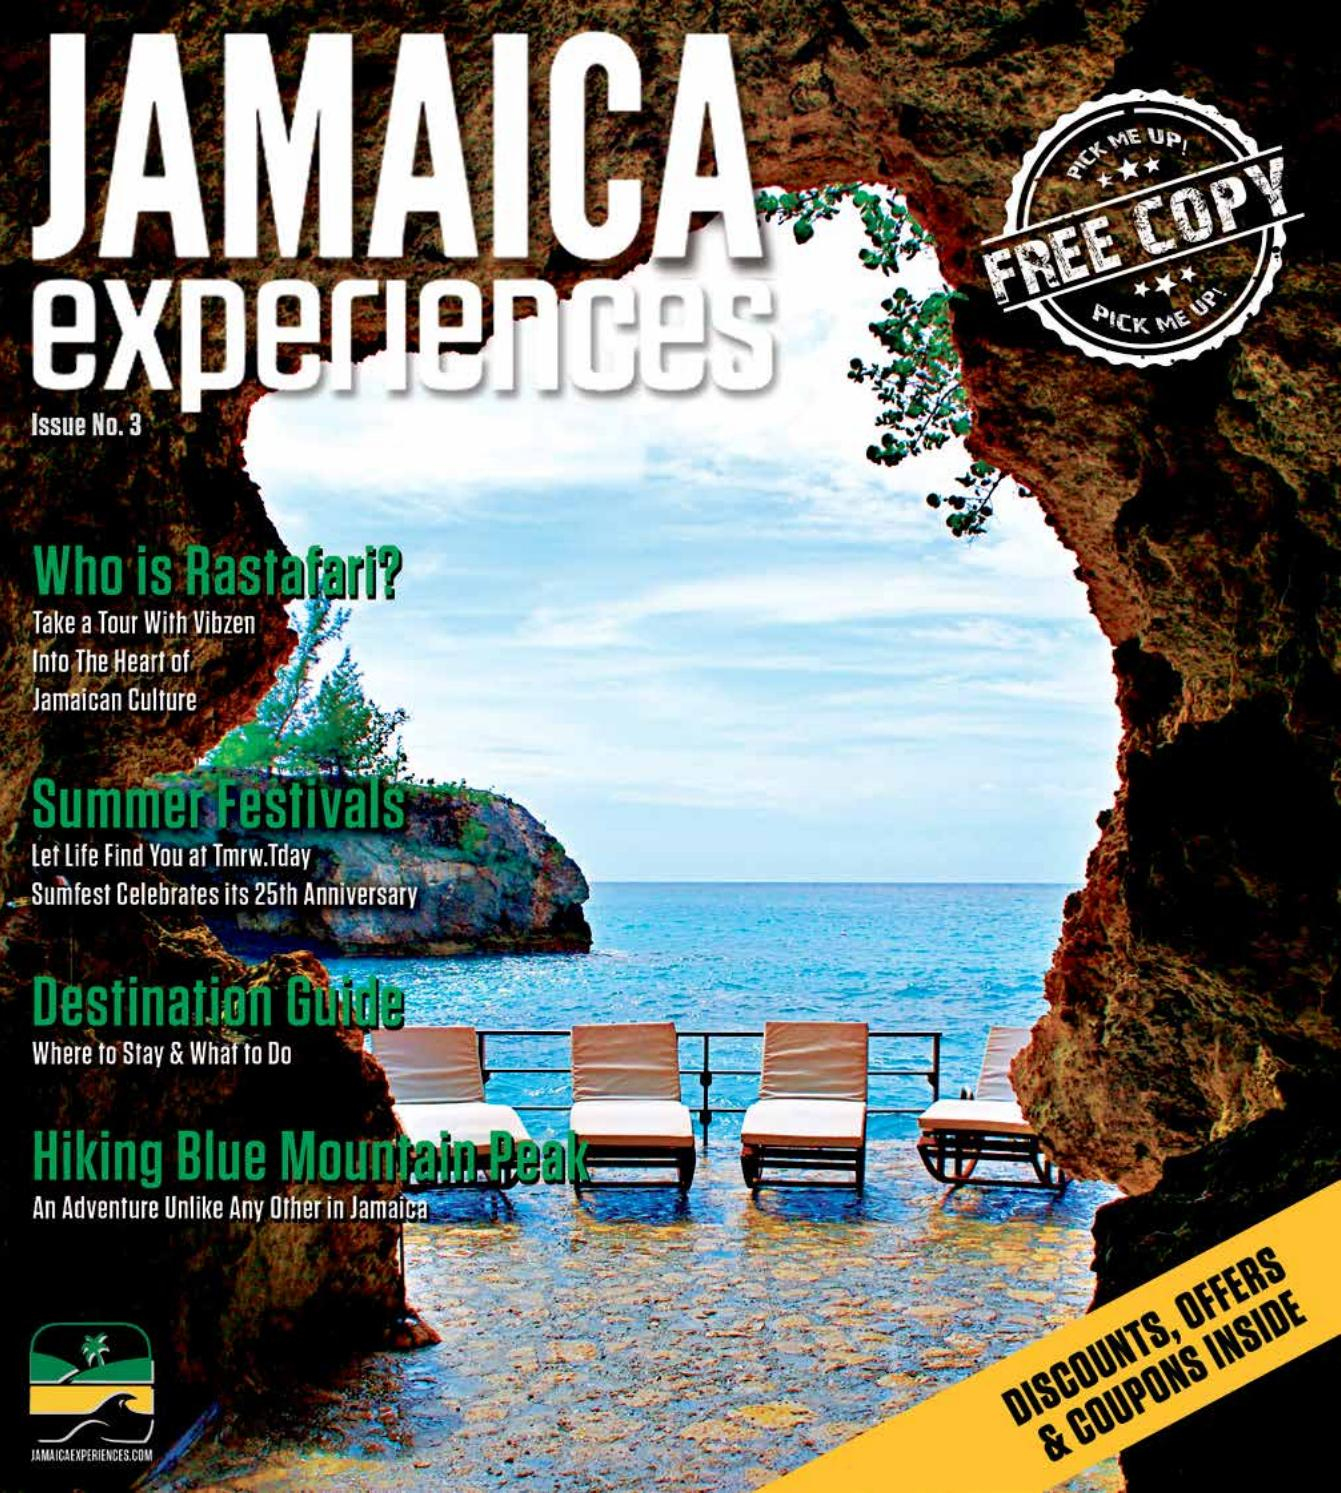 Jamaica experiences digital newspaper issue 3 by JamaicaExperiences